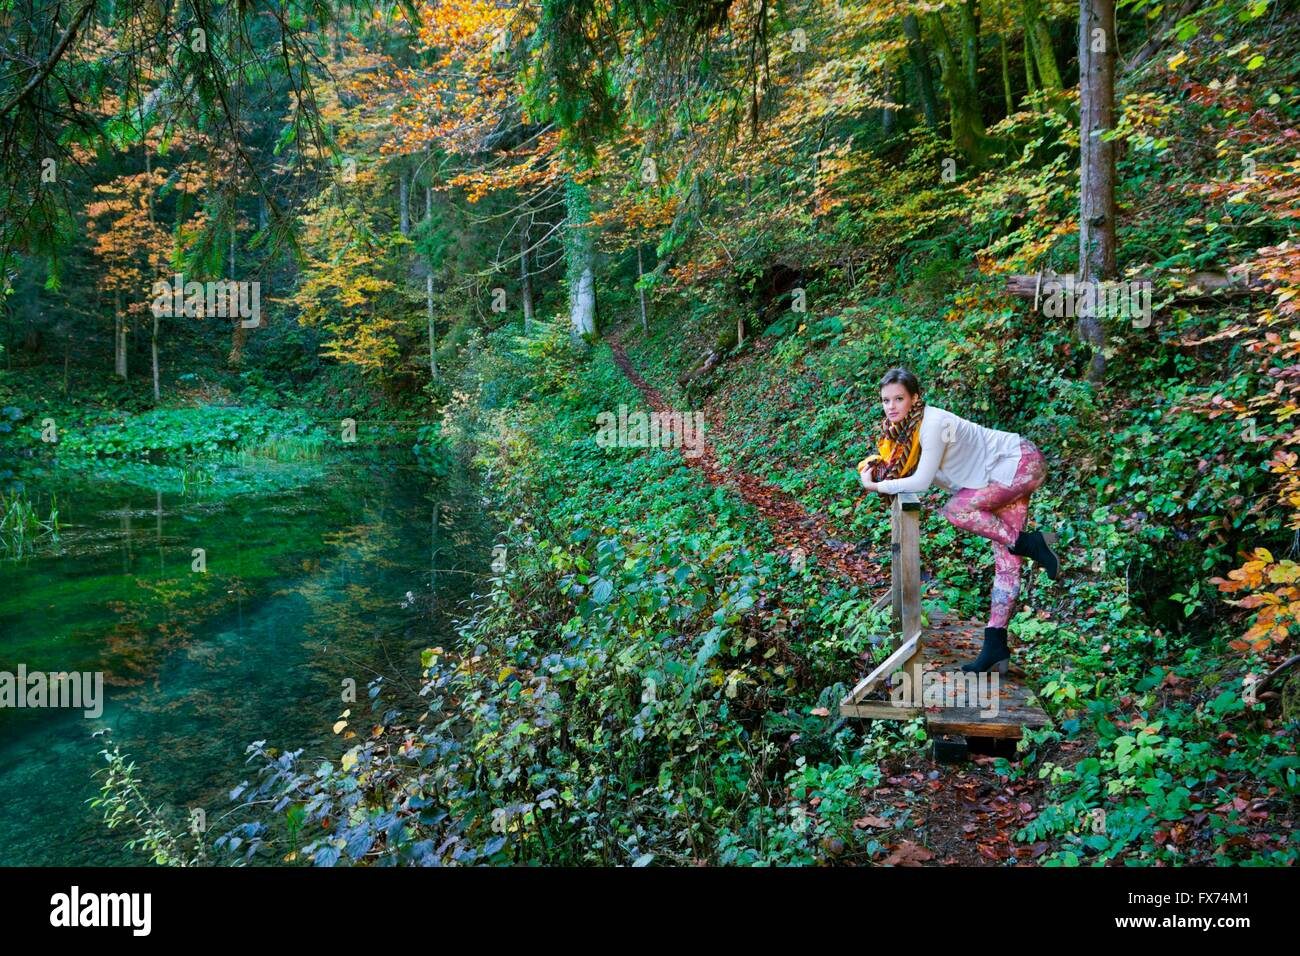 Short-haired teenager girl in woodland forest posing pose colorful pants Autumn Fall trail lake deep trees strike pose striking Stock Photo